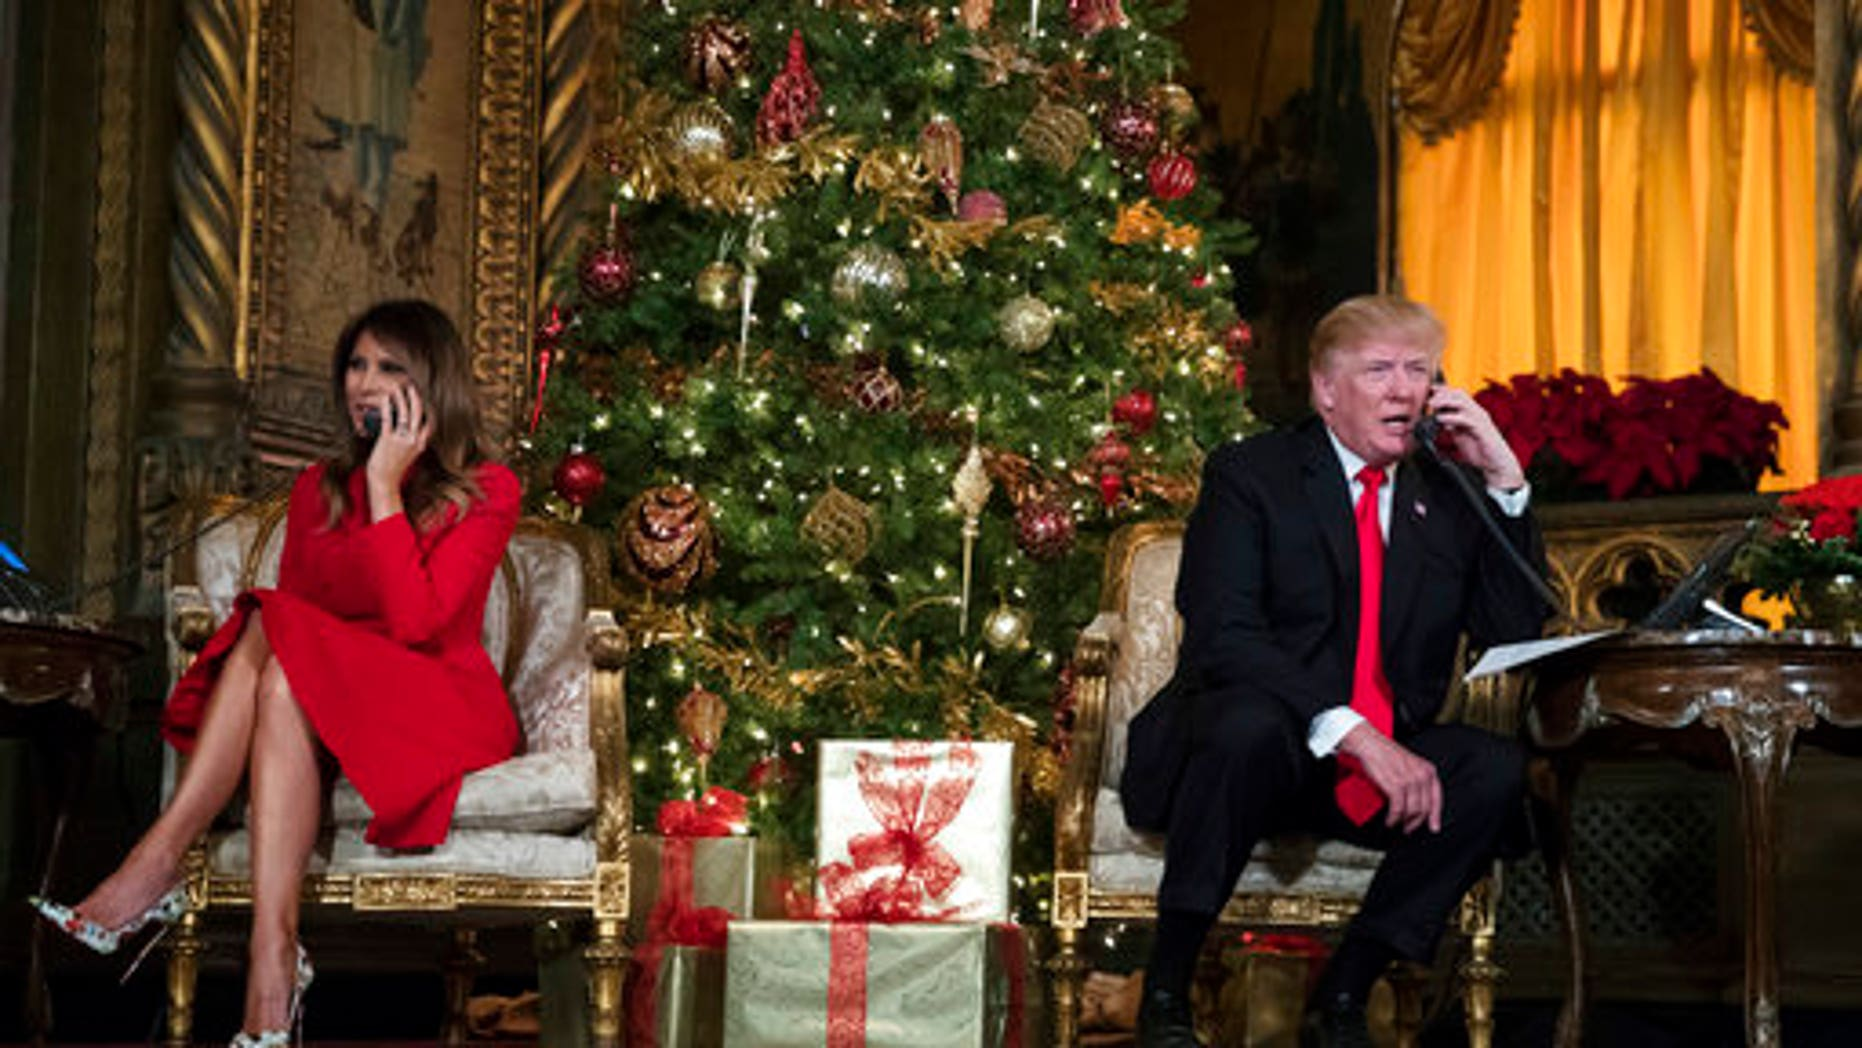 President Donald Trump and first lady Melania Trump speak on the phone with children at the president's Mar-a-Lago estate in Palm Beach, Fla., Sunday, Dec. 24, 2017.